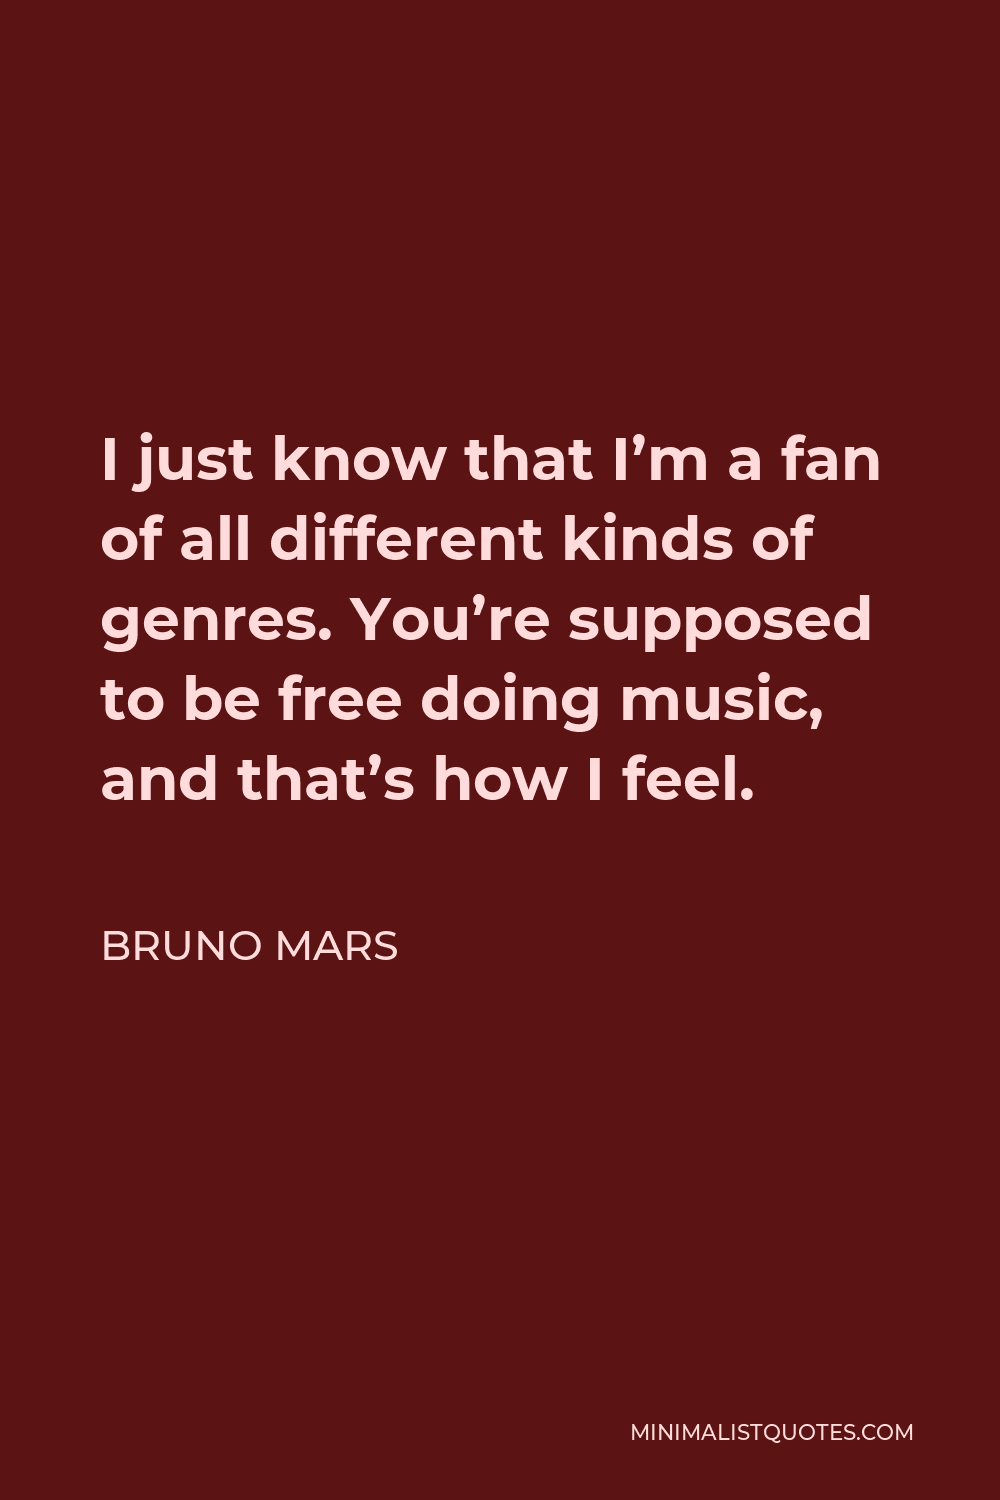 Bruno Mars Quote - I just know that I'm a fan of all different kinds of genres. You're supposed to be free doing music, and that's how I feel.